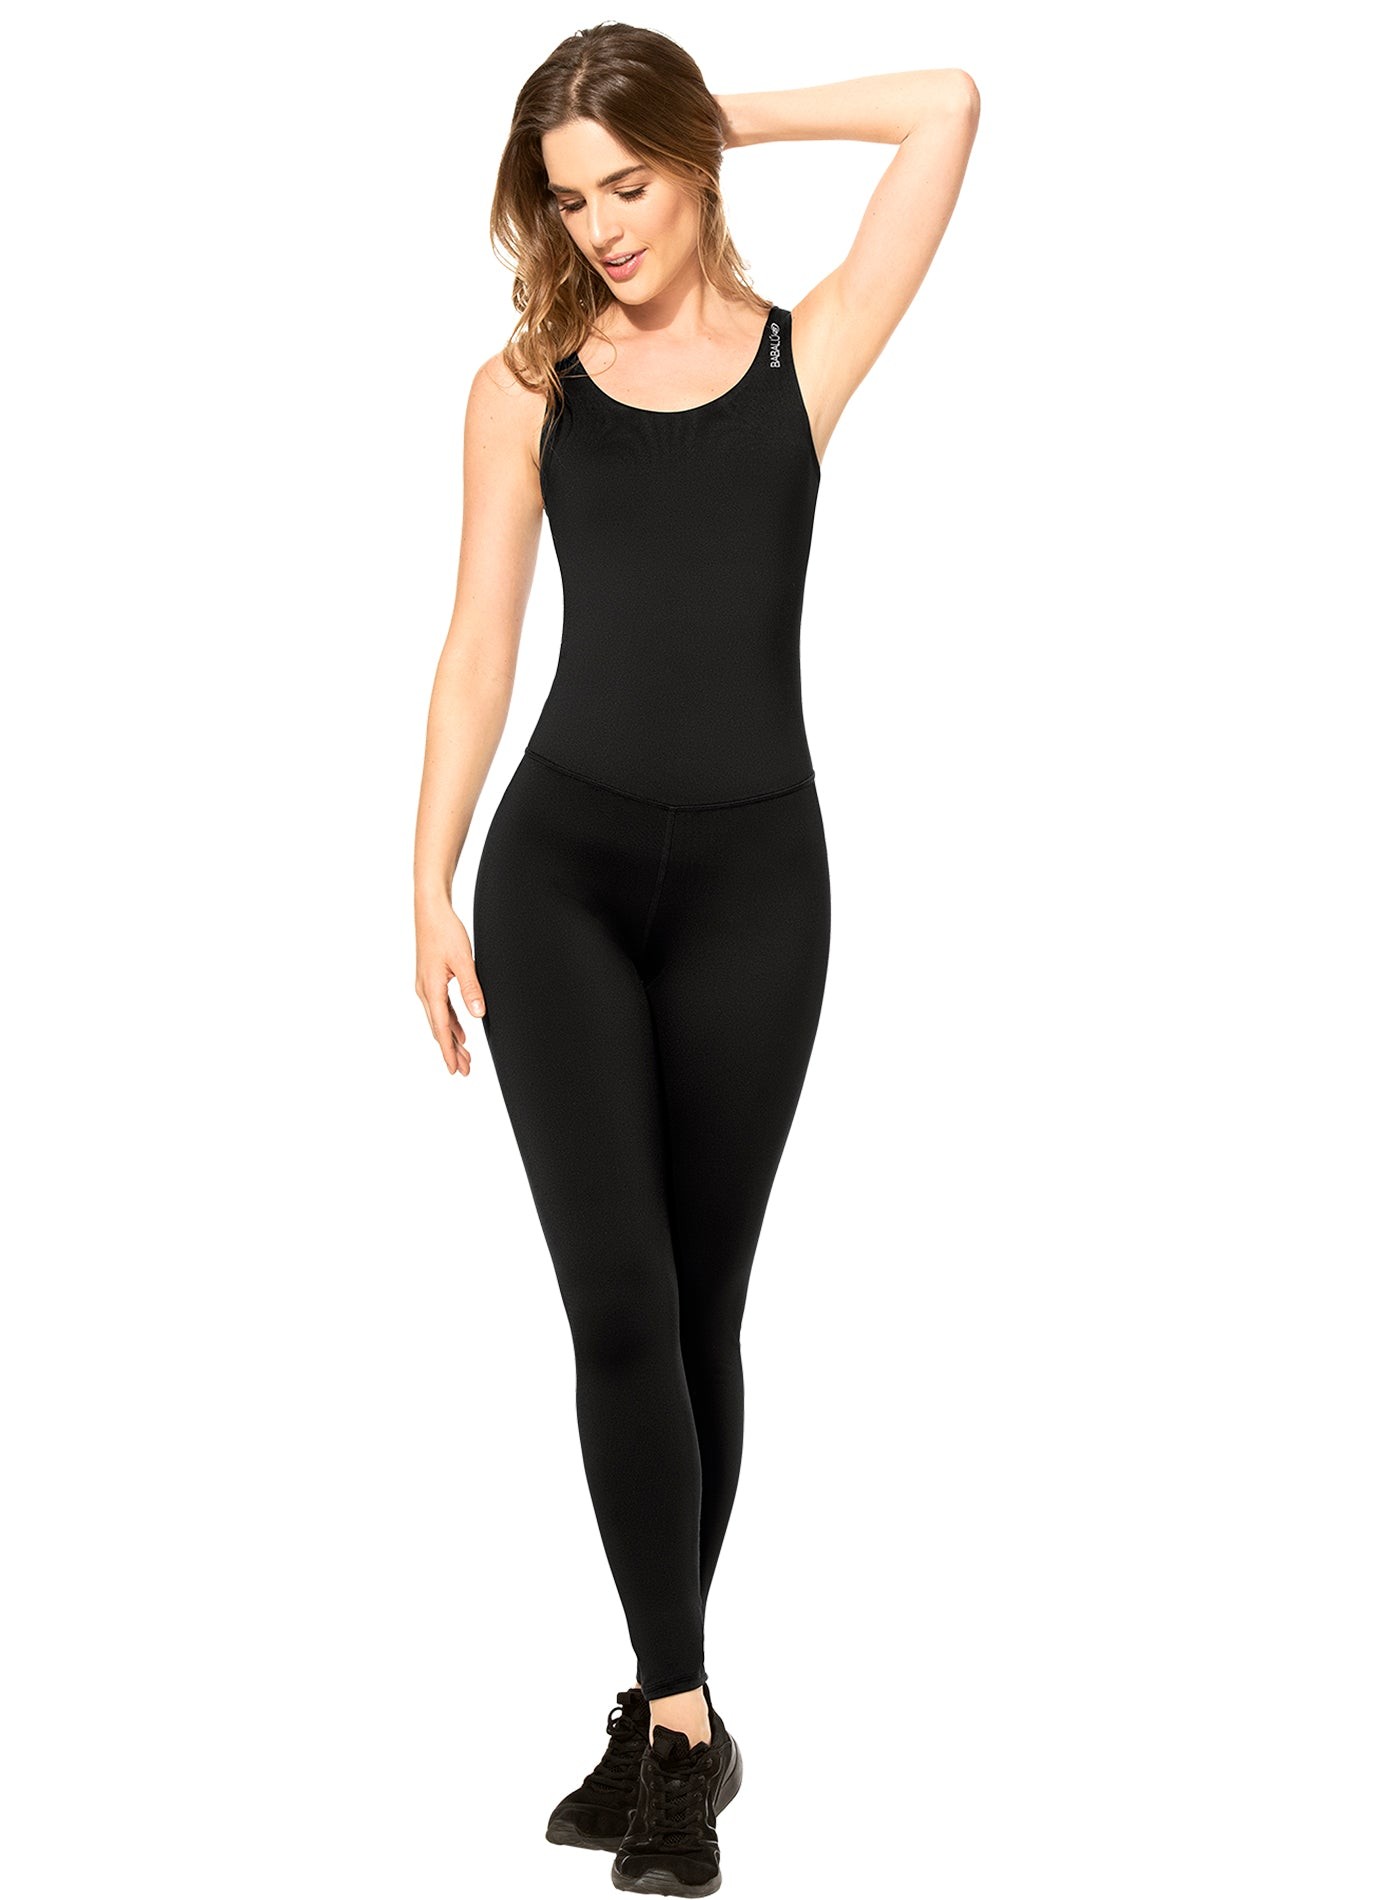 POLYESTER JUMPSUIT ONE SIZE Ref. 80363